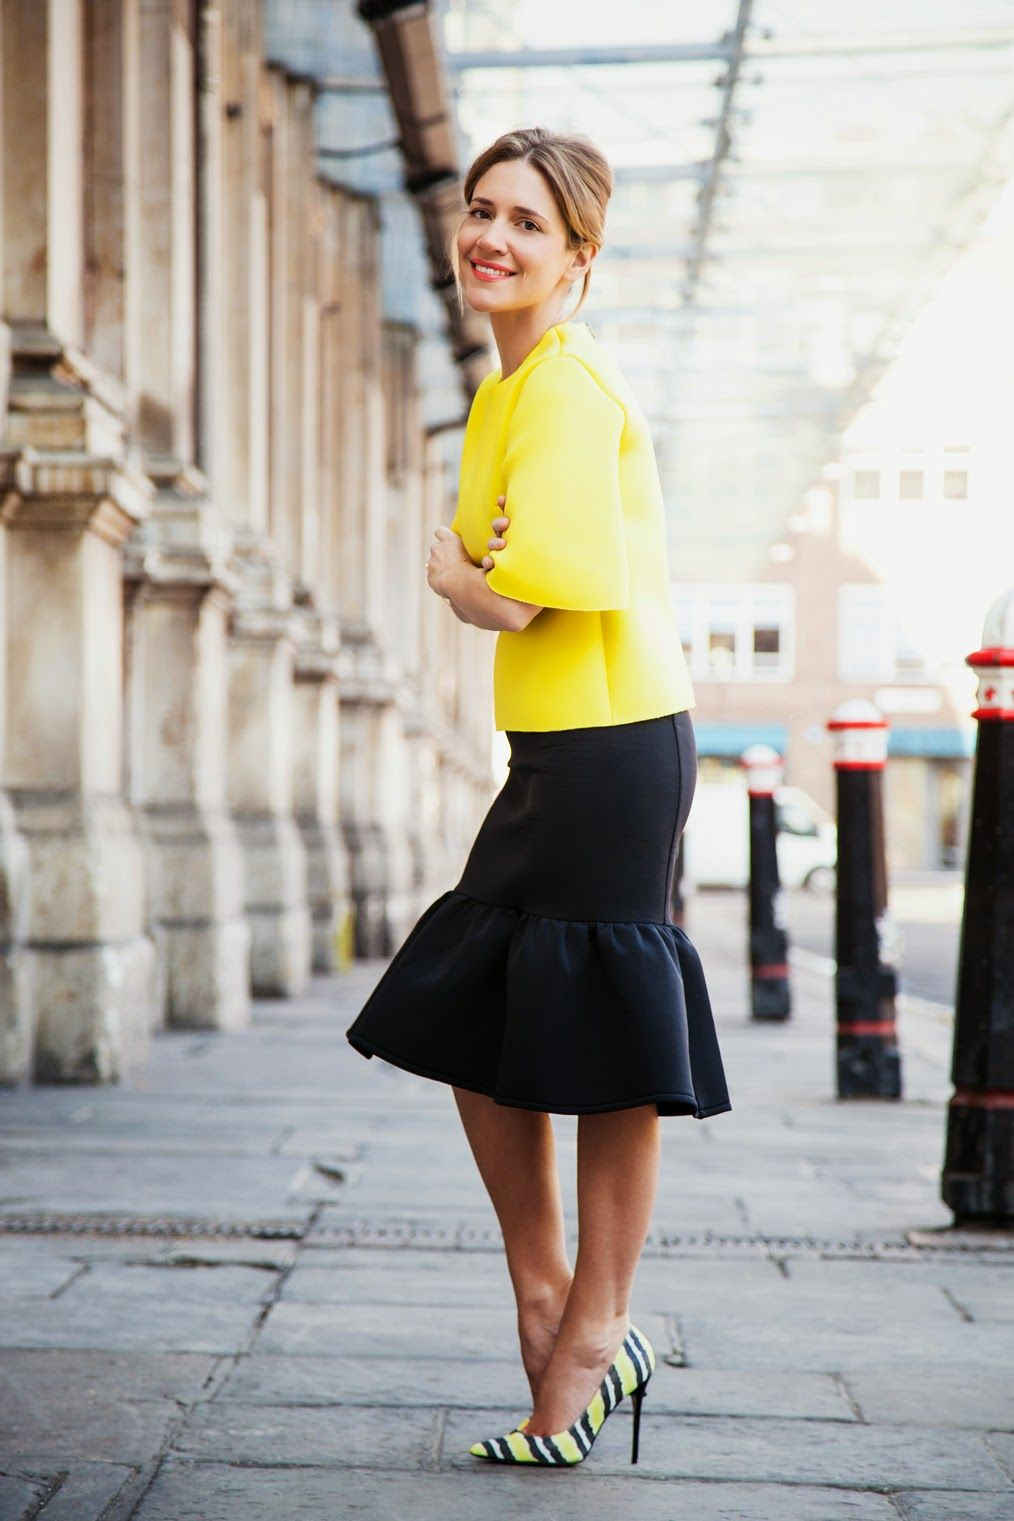 Black dress yellow heels - Perfect Spring And Summer Outfit Yellow Top Ruffled Black Skirt And Black